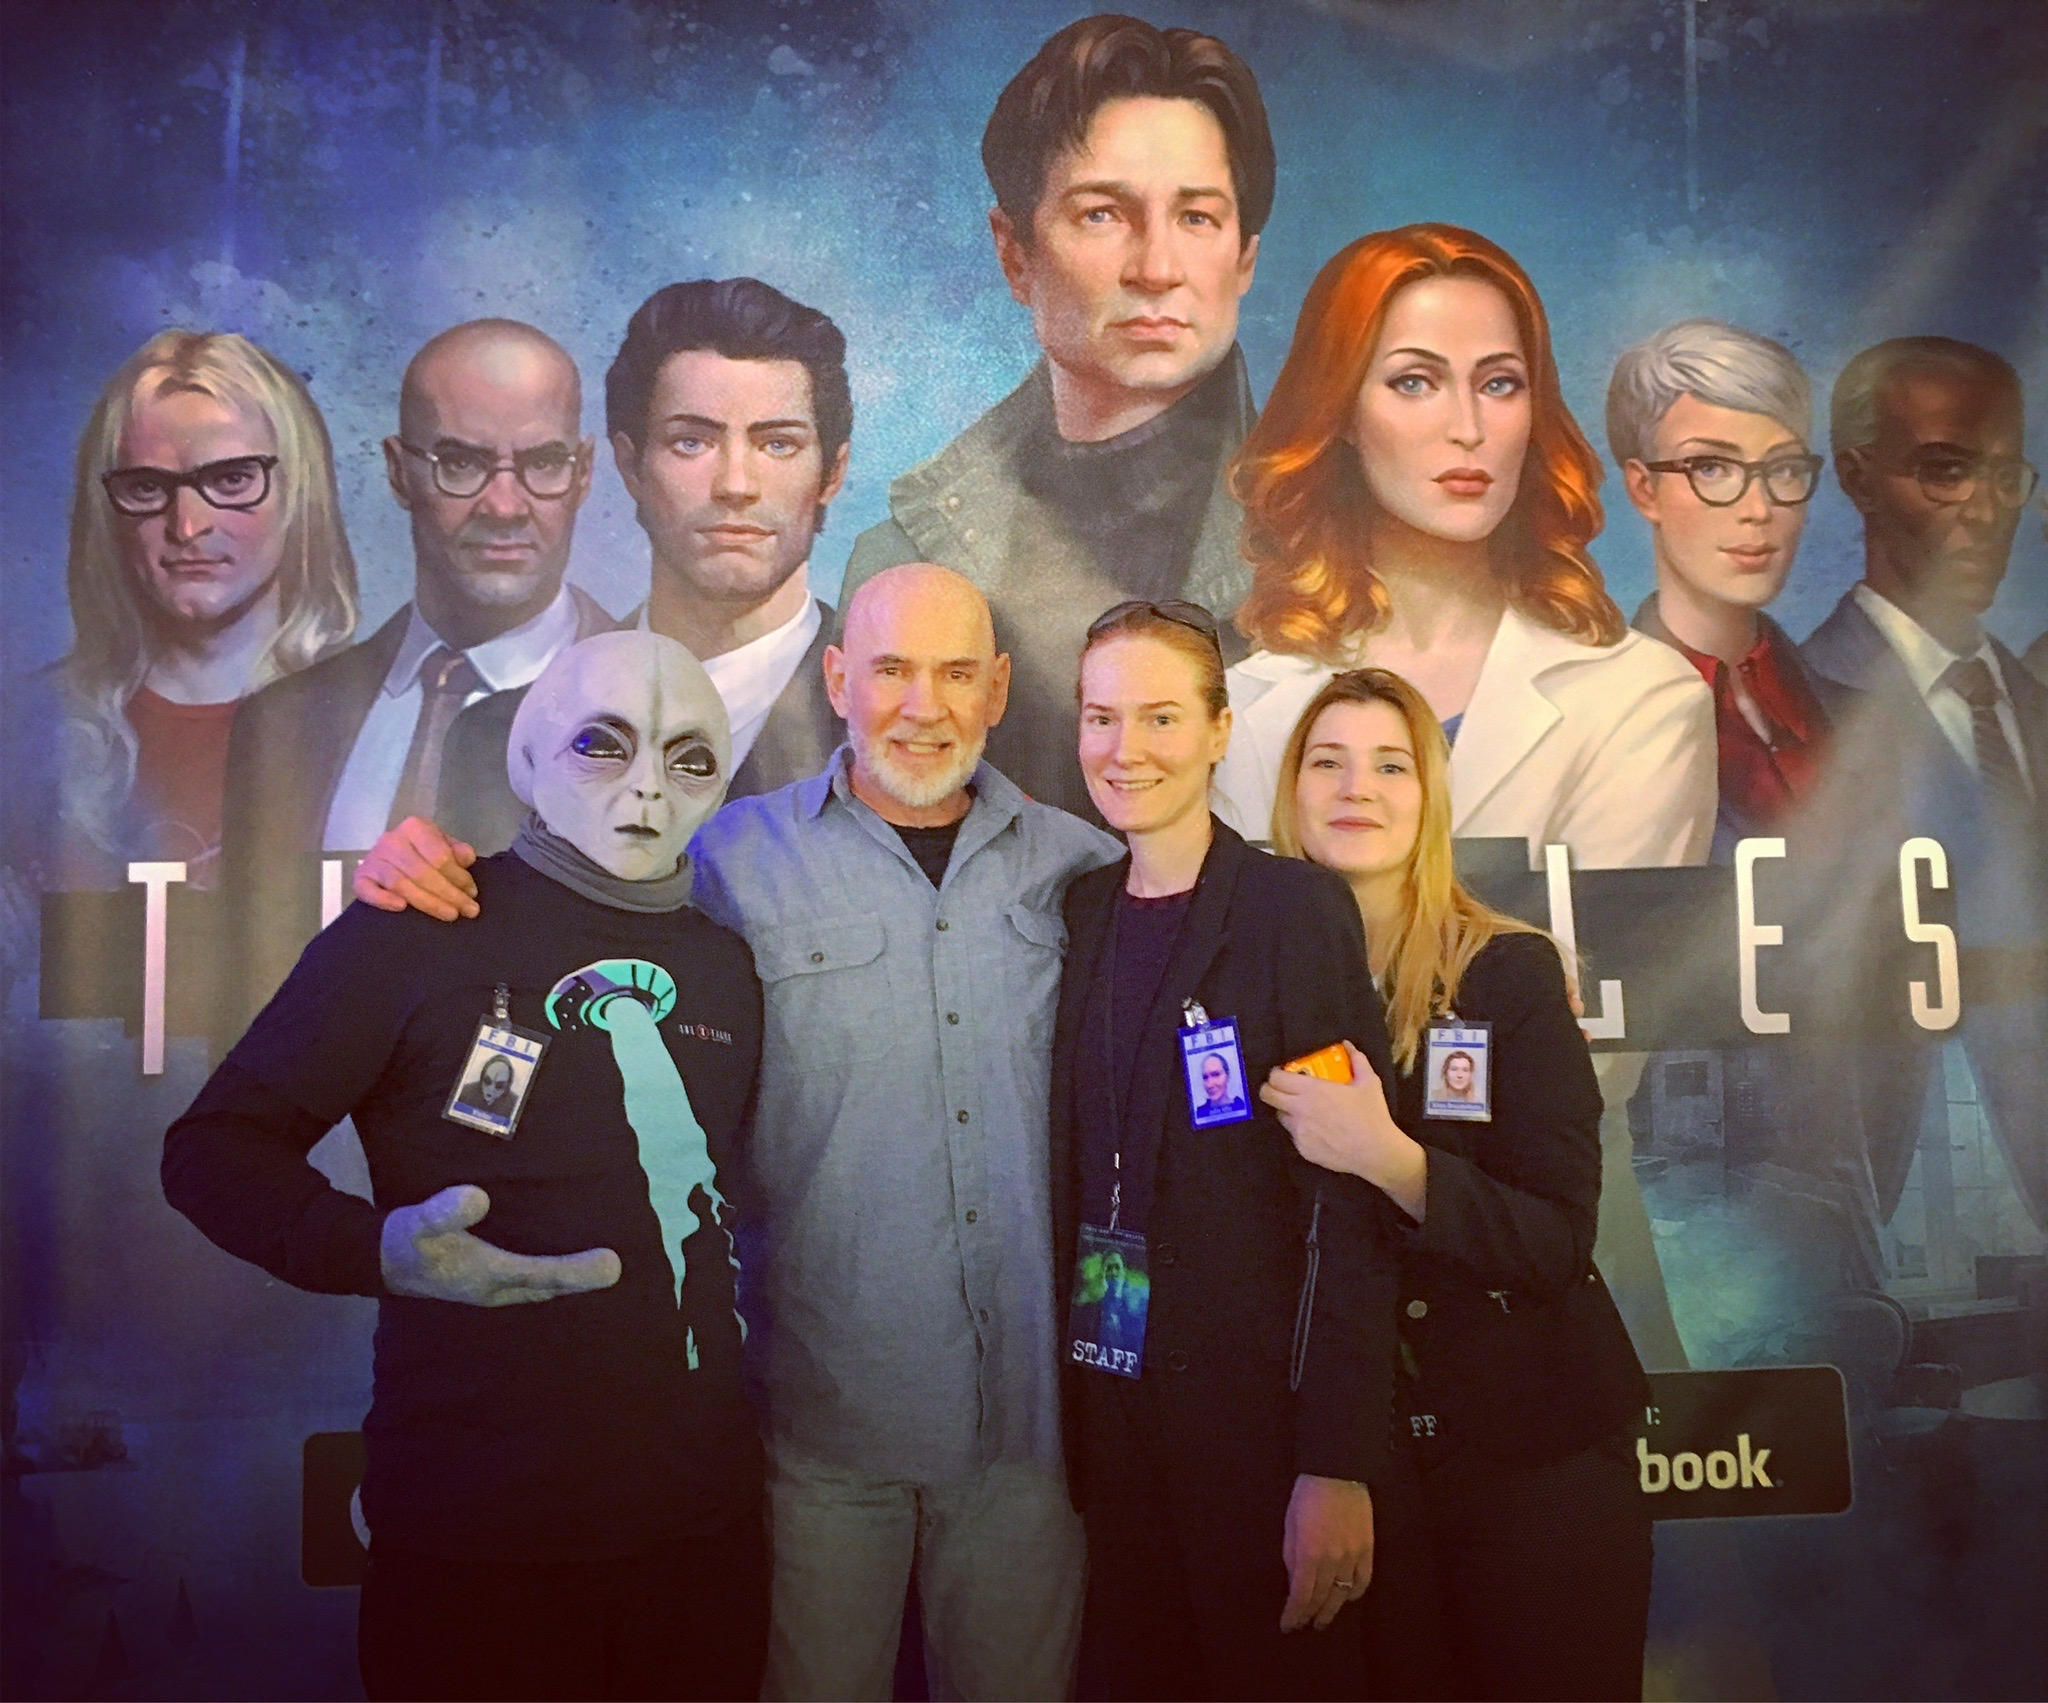 """Mitch Pileggi (the show's Assistant Director Walter Skinner) came wondering by – only to see his illustrated face staring back at him from 'The X-Files: Deep State' banner."""